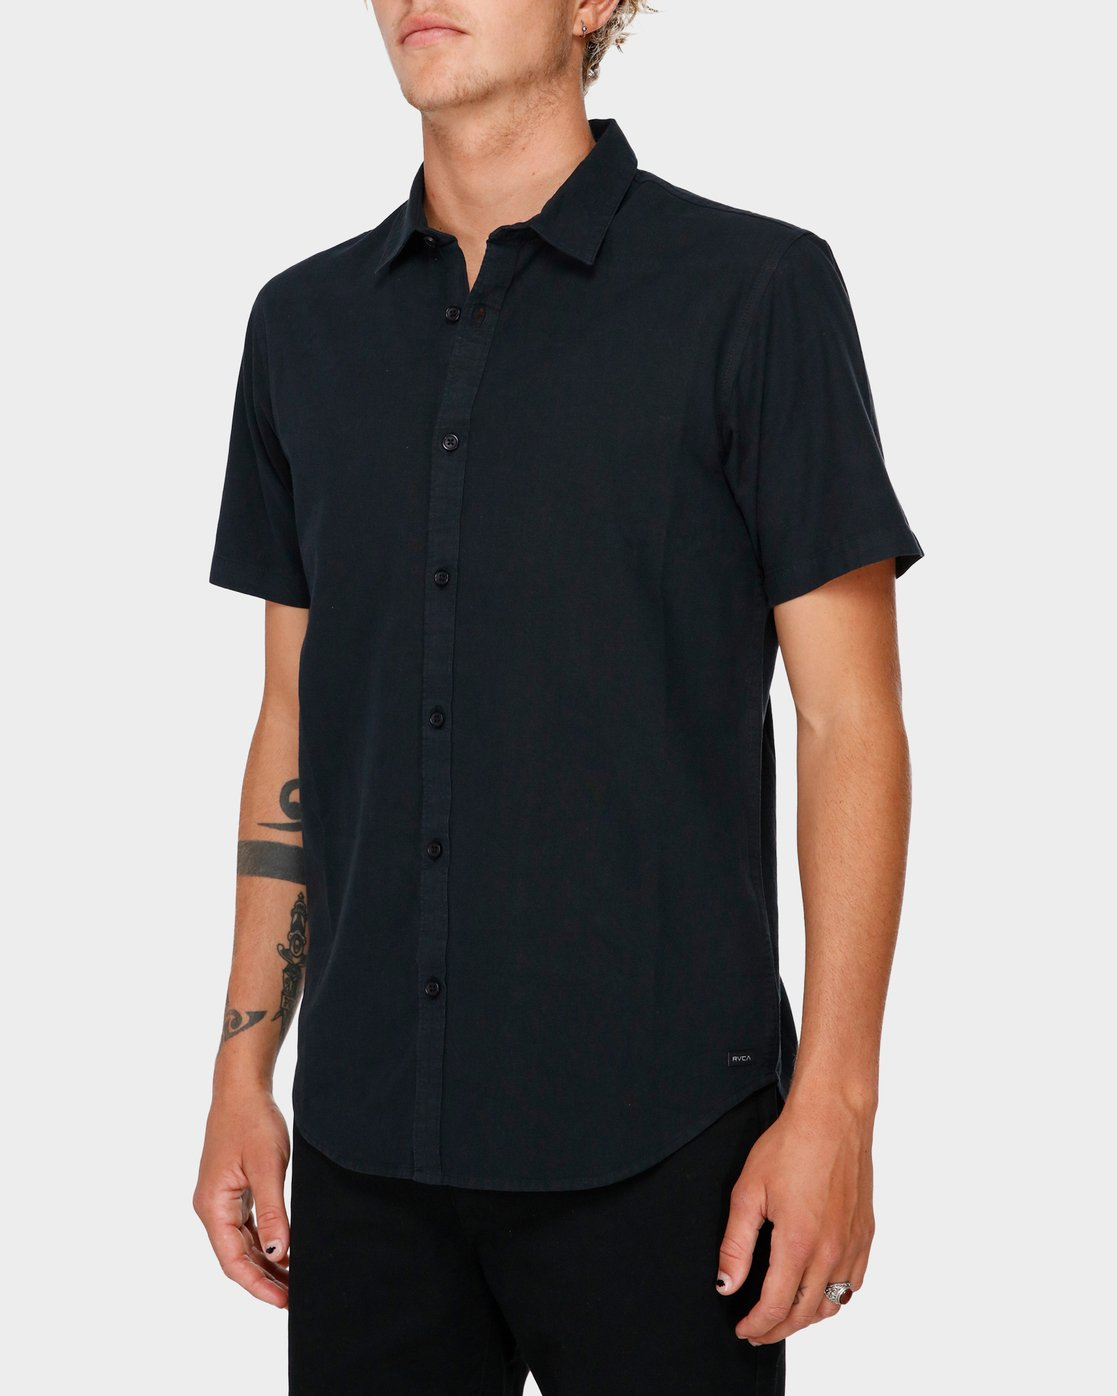 0 Crushed Short Sleeve Shirt Black R182191 RVCA